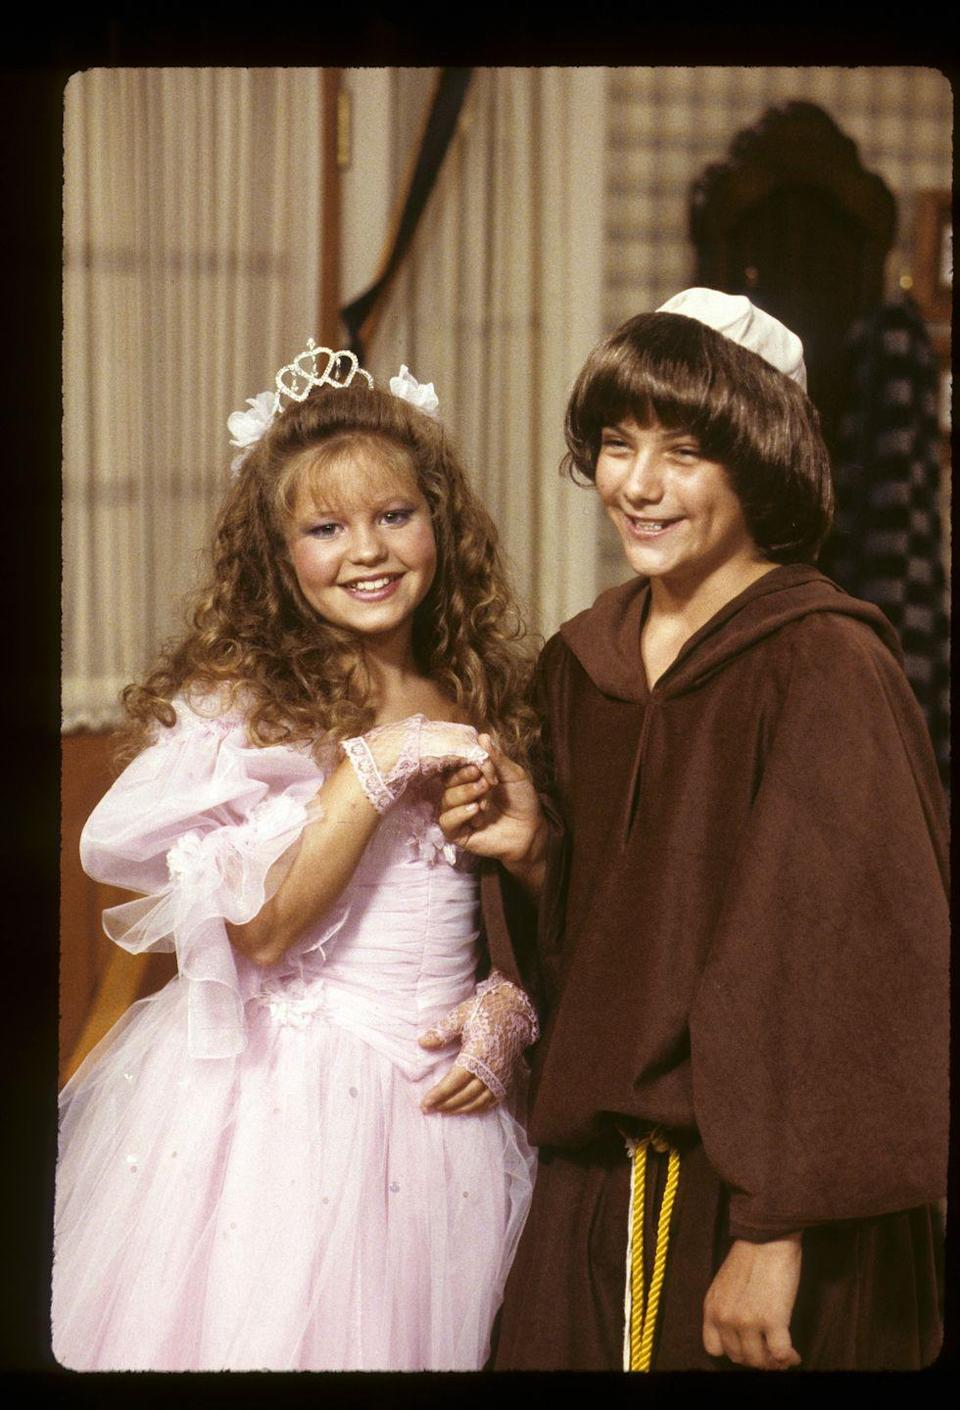 <p>Candace followed in the footsteps of her older brother Kirk, a.k.a. Mike Seaver of <em>Growing Pains</em>. In 1987, she was cast as D.J. Tanner in <em>Full House</em>, starting her career as one of most famous preteens of the late '80s and early '90s.</p>